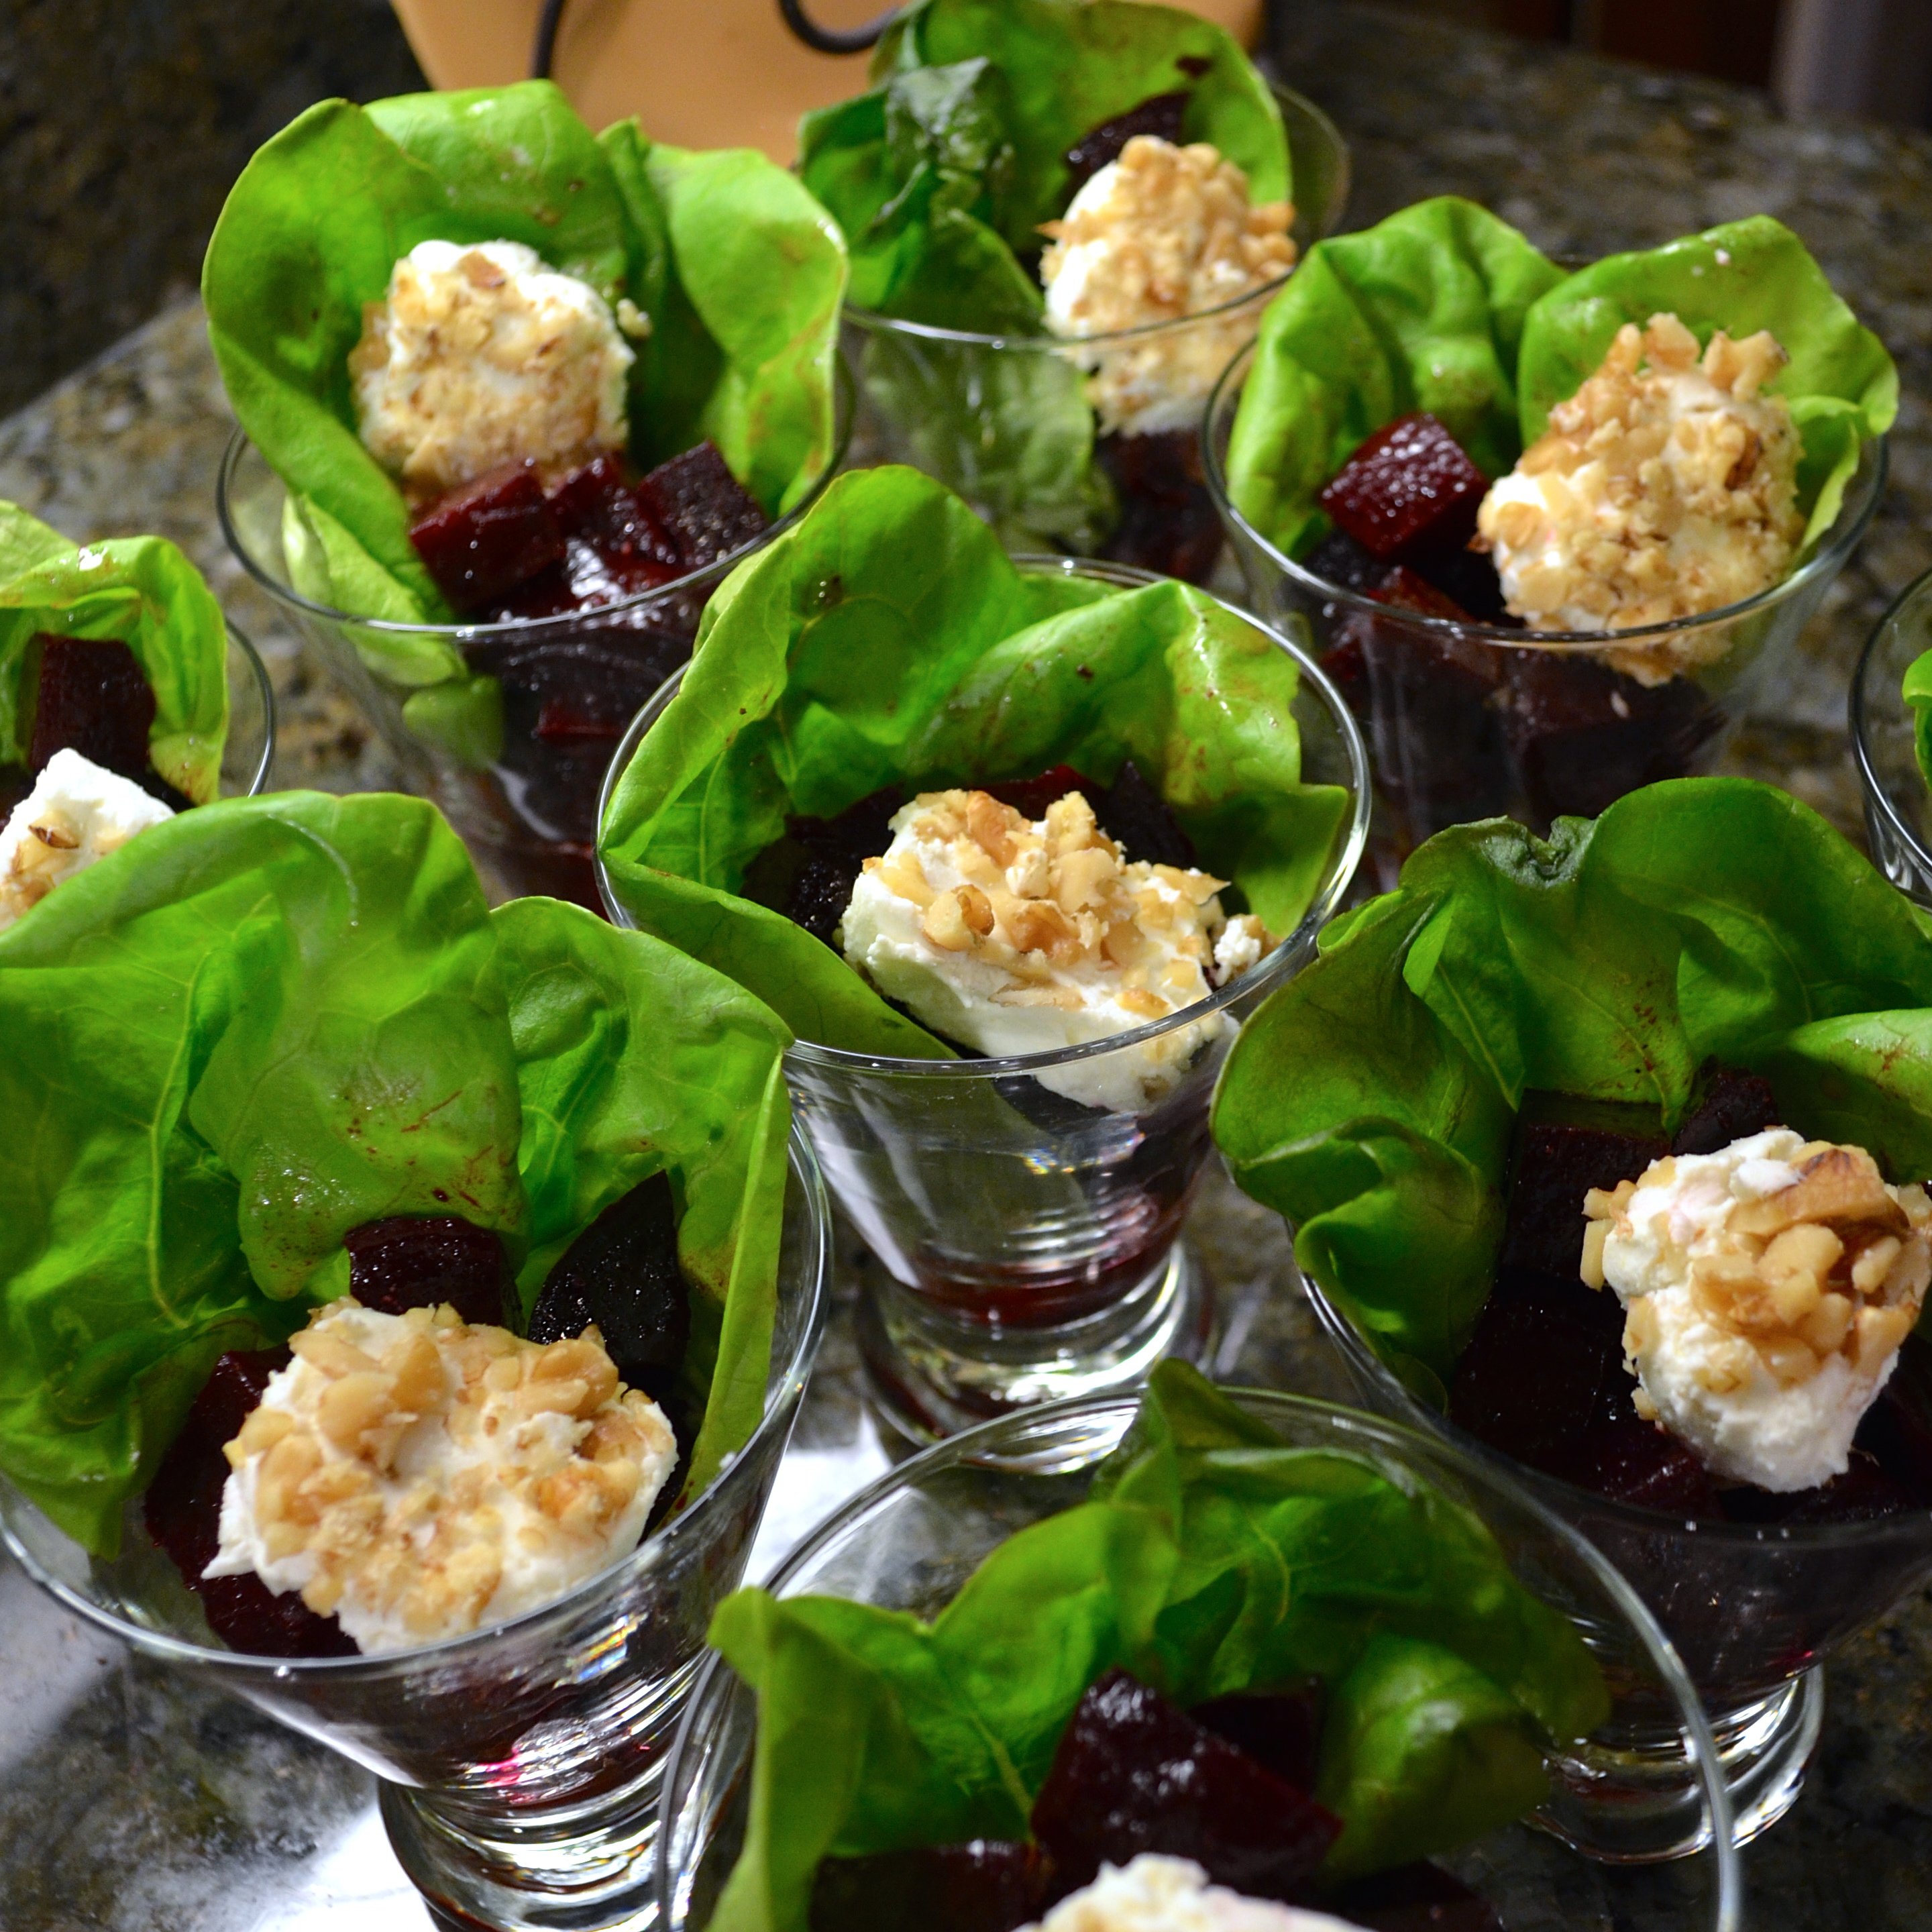 ... celebration a farm to table beet salad with goat cheese and walnuts